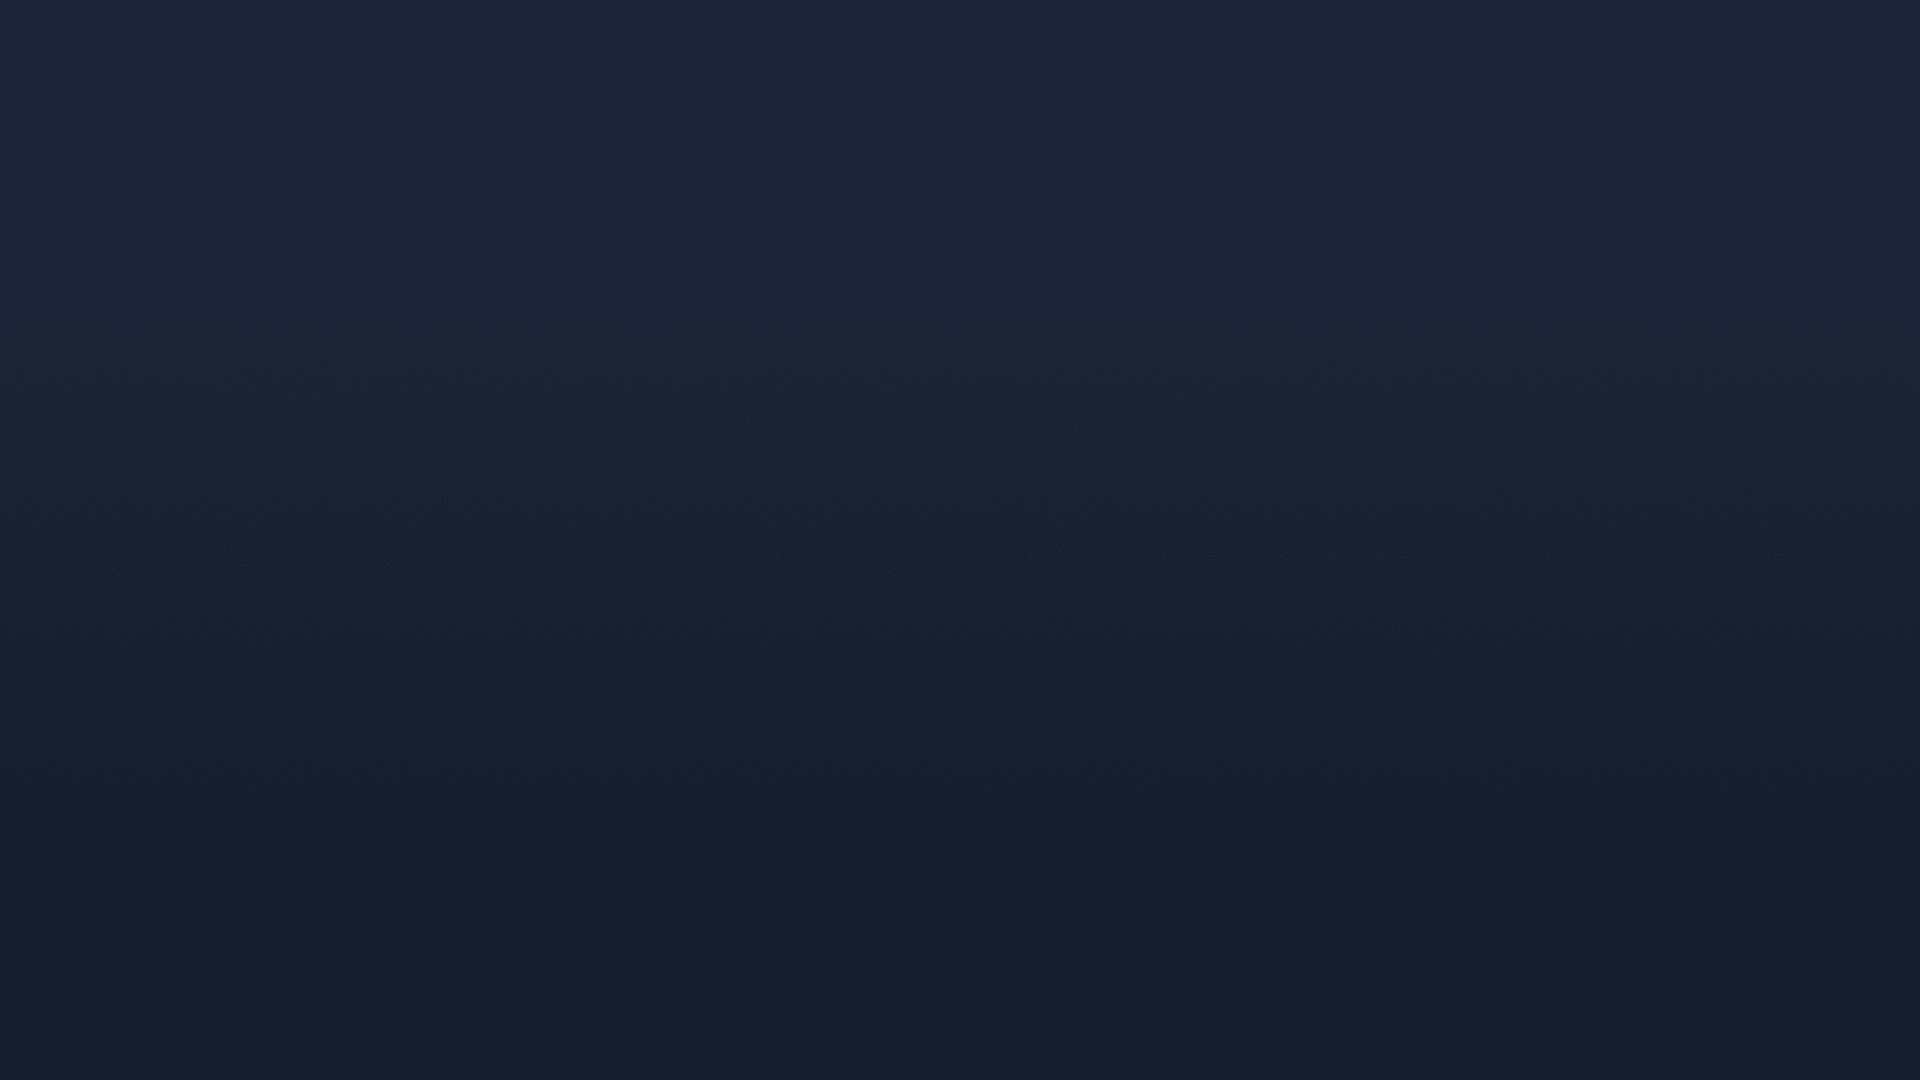 dark-blue-background.png